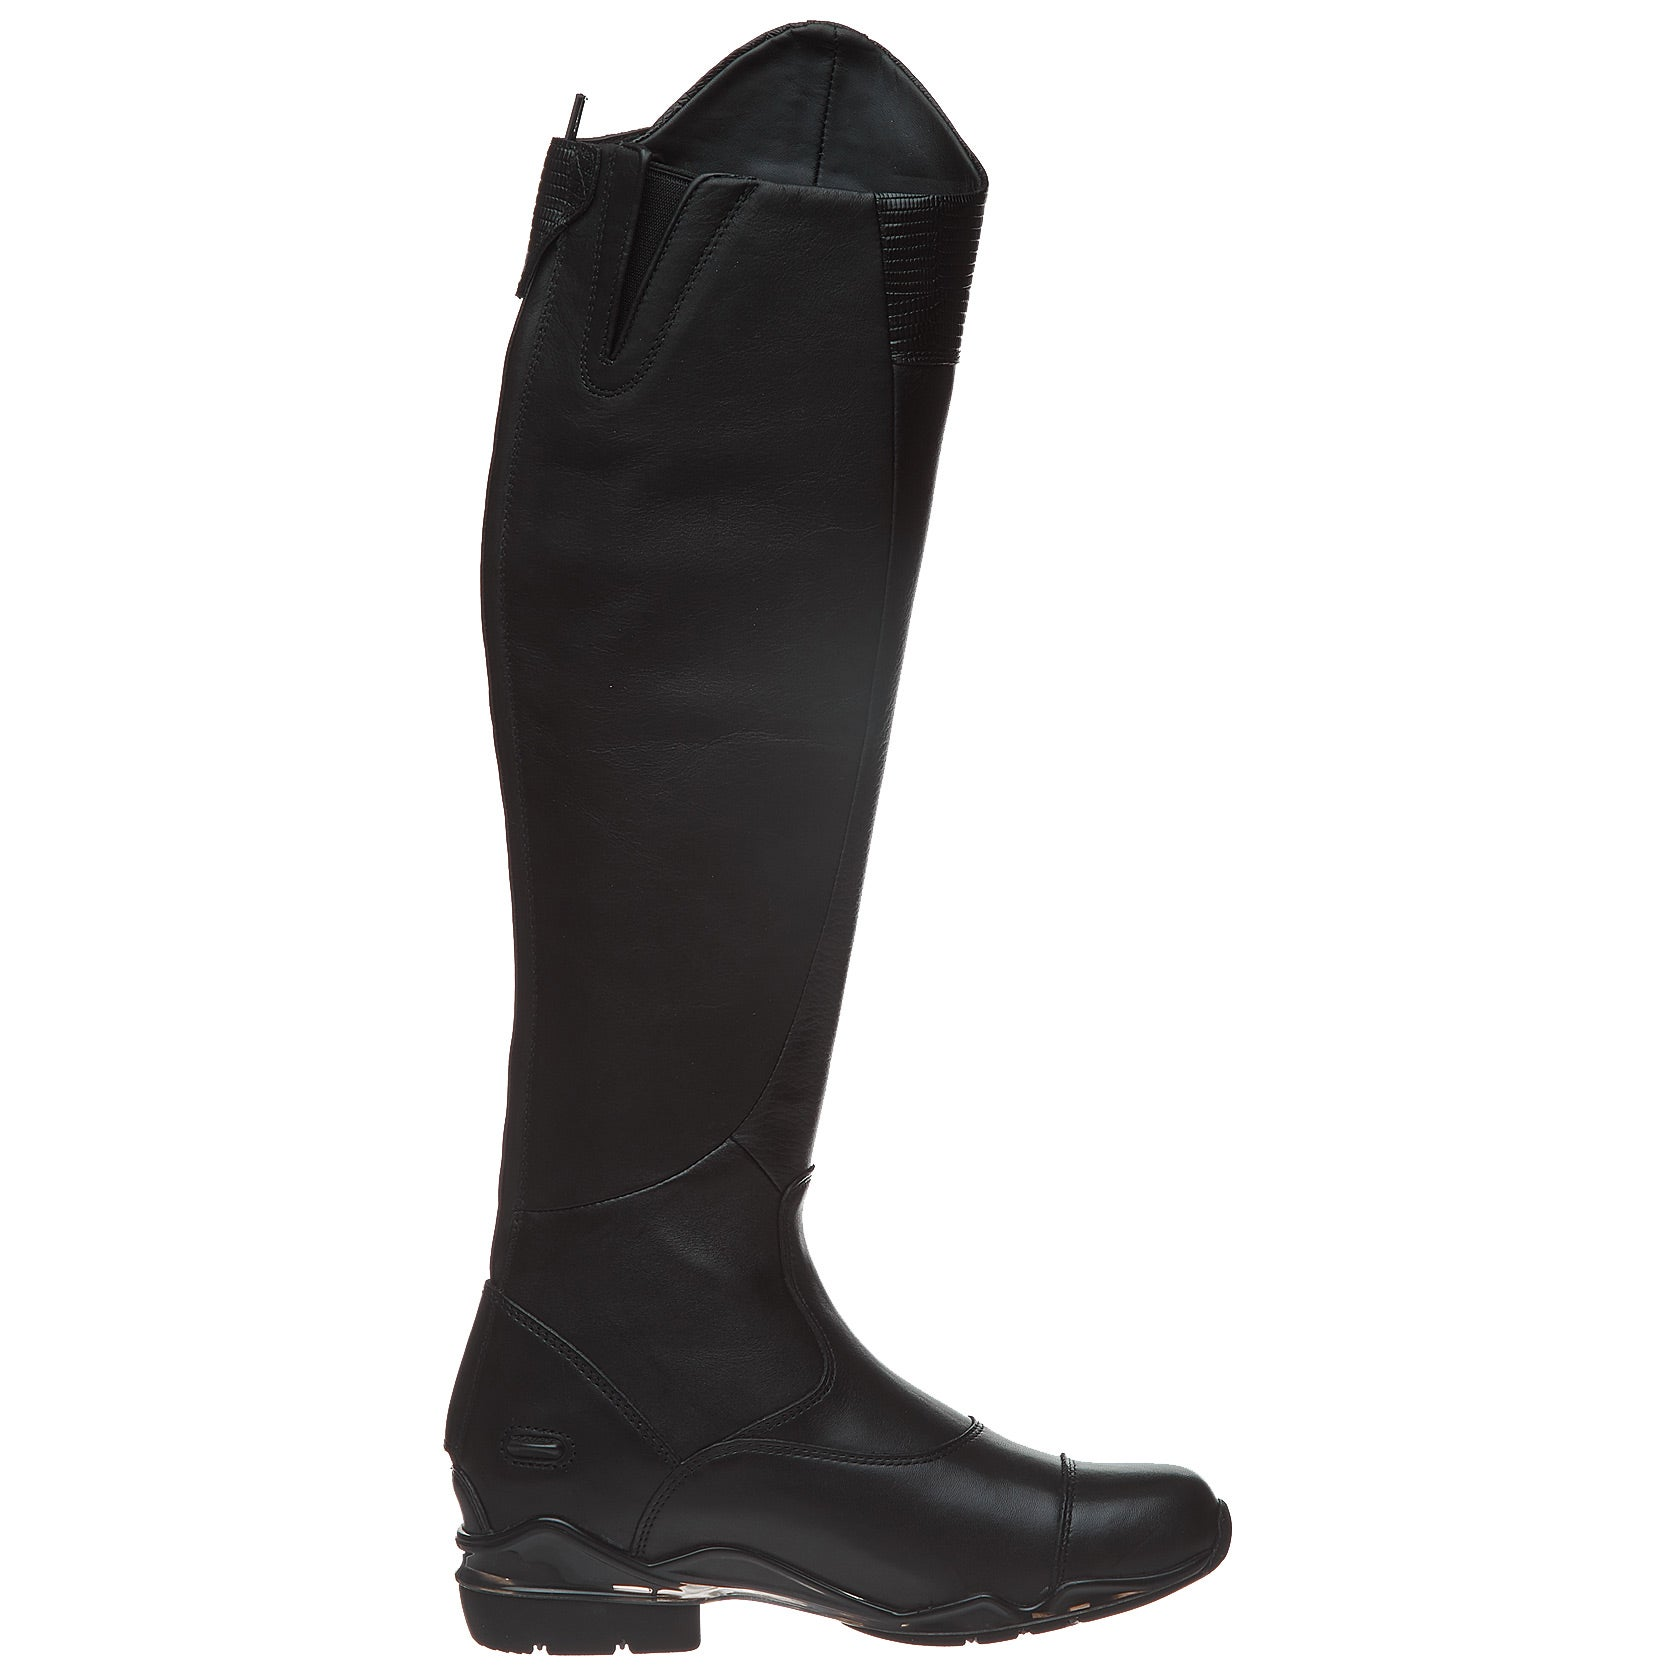 273ae76c8a25 Ariat Volant S Back Zip Women's Tall Boots-Black. view large. 360 View